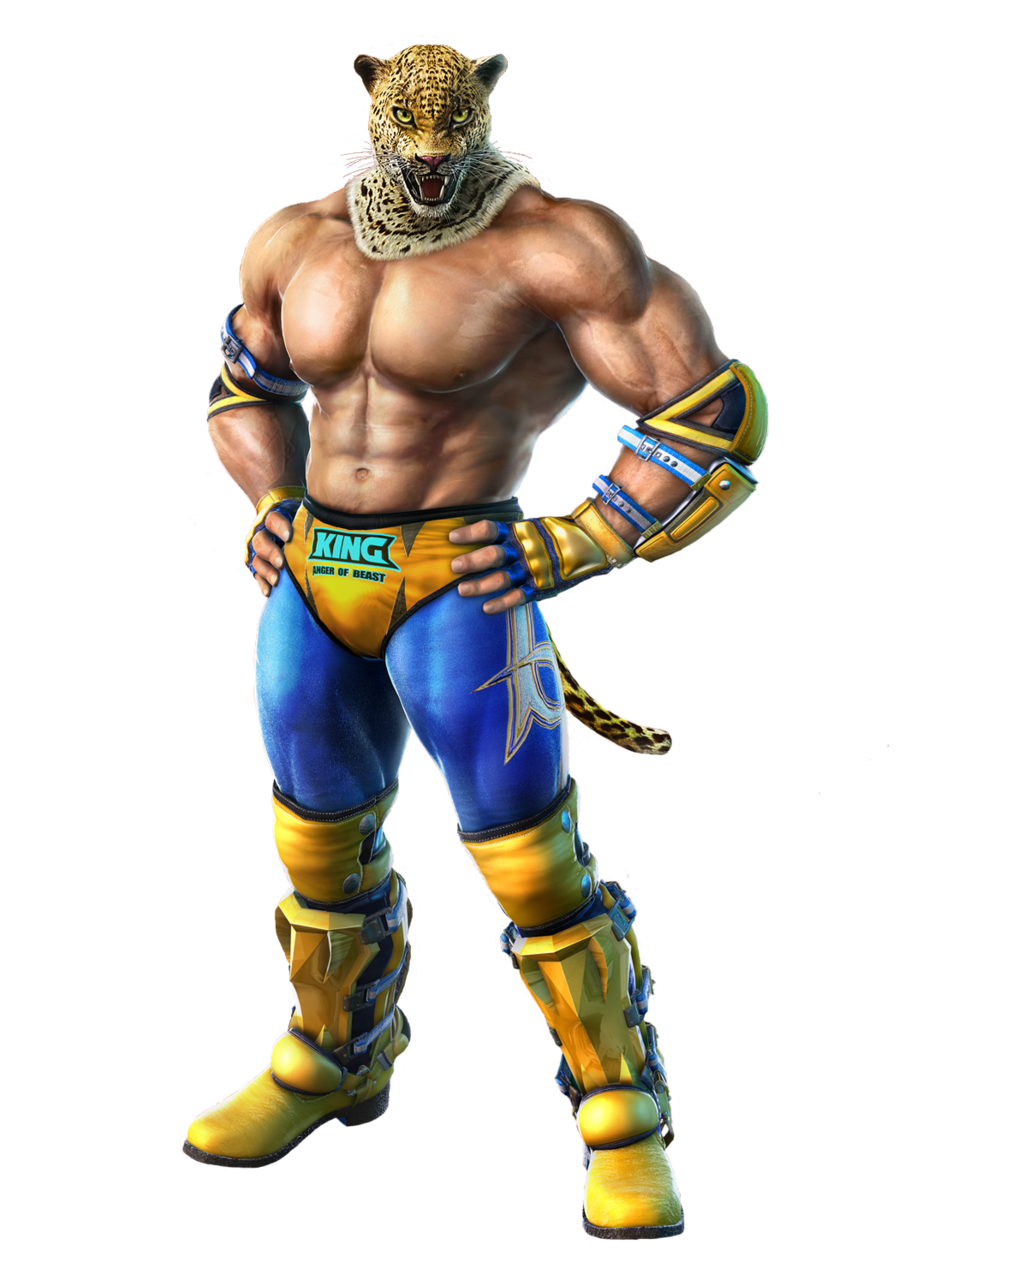 Tekken Png 92 Images In Collection Pa 485299 Png Images Pngio